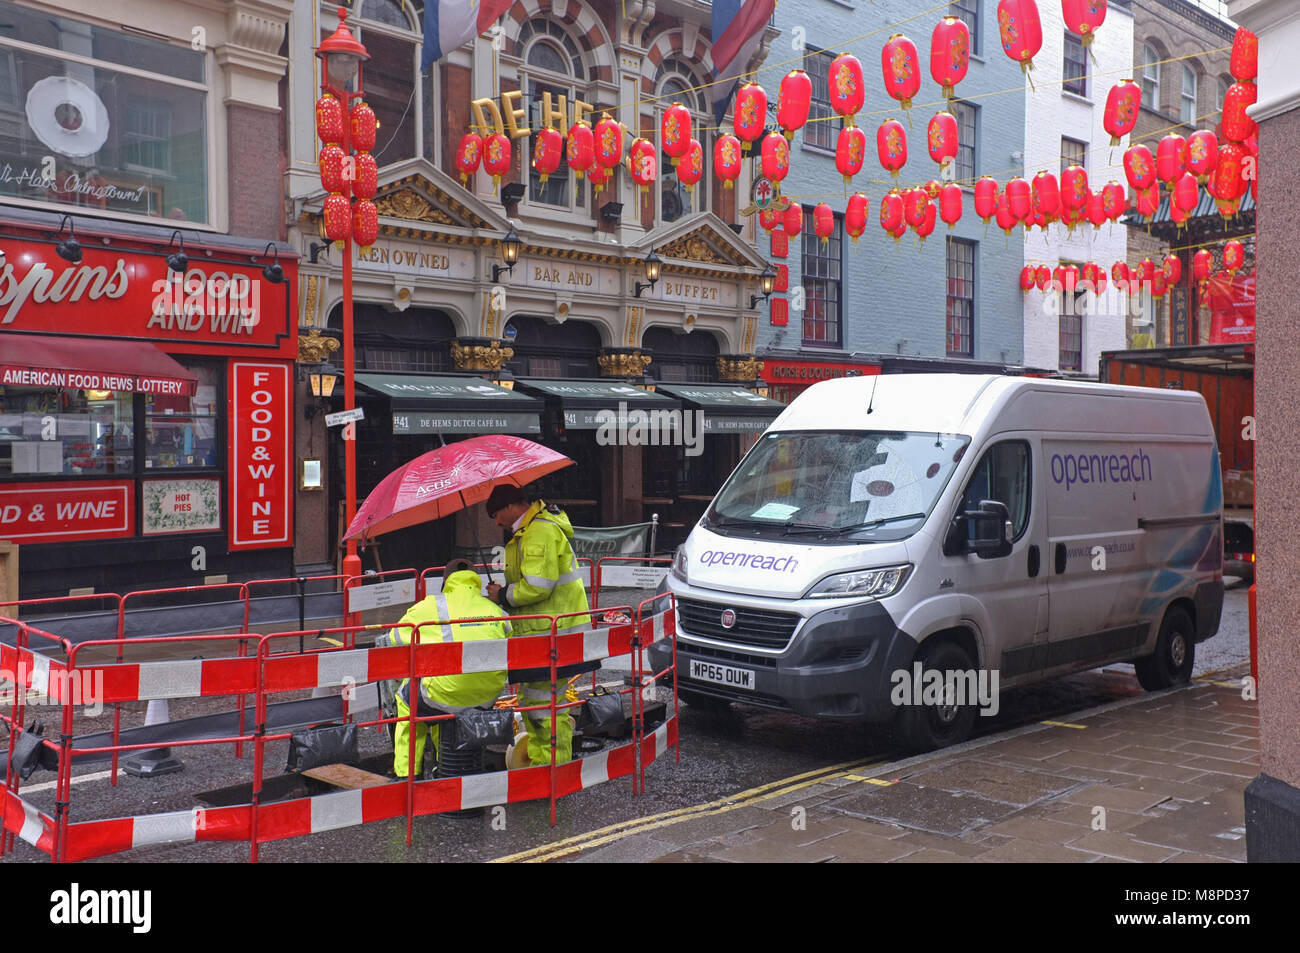 BT Open Reach engineers in the rain in Soho, London. - Stock Image